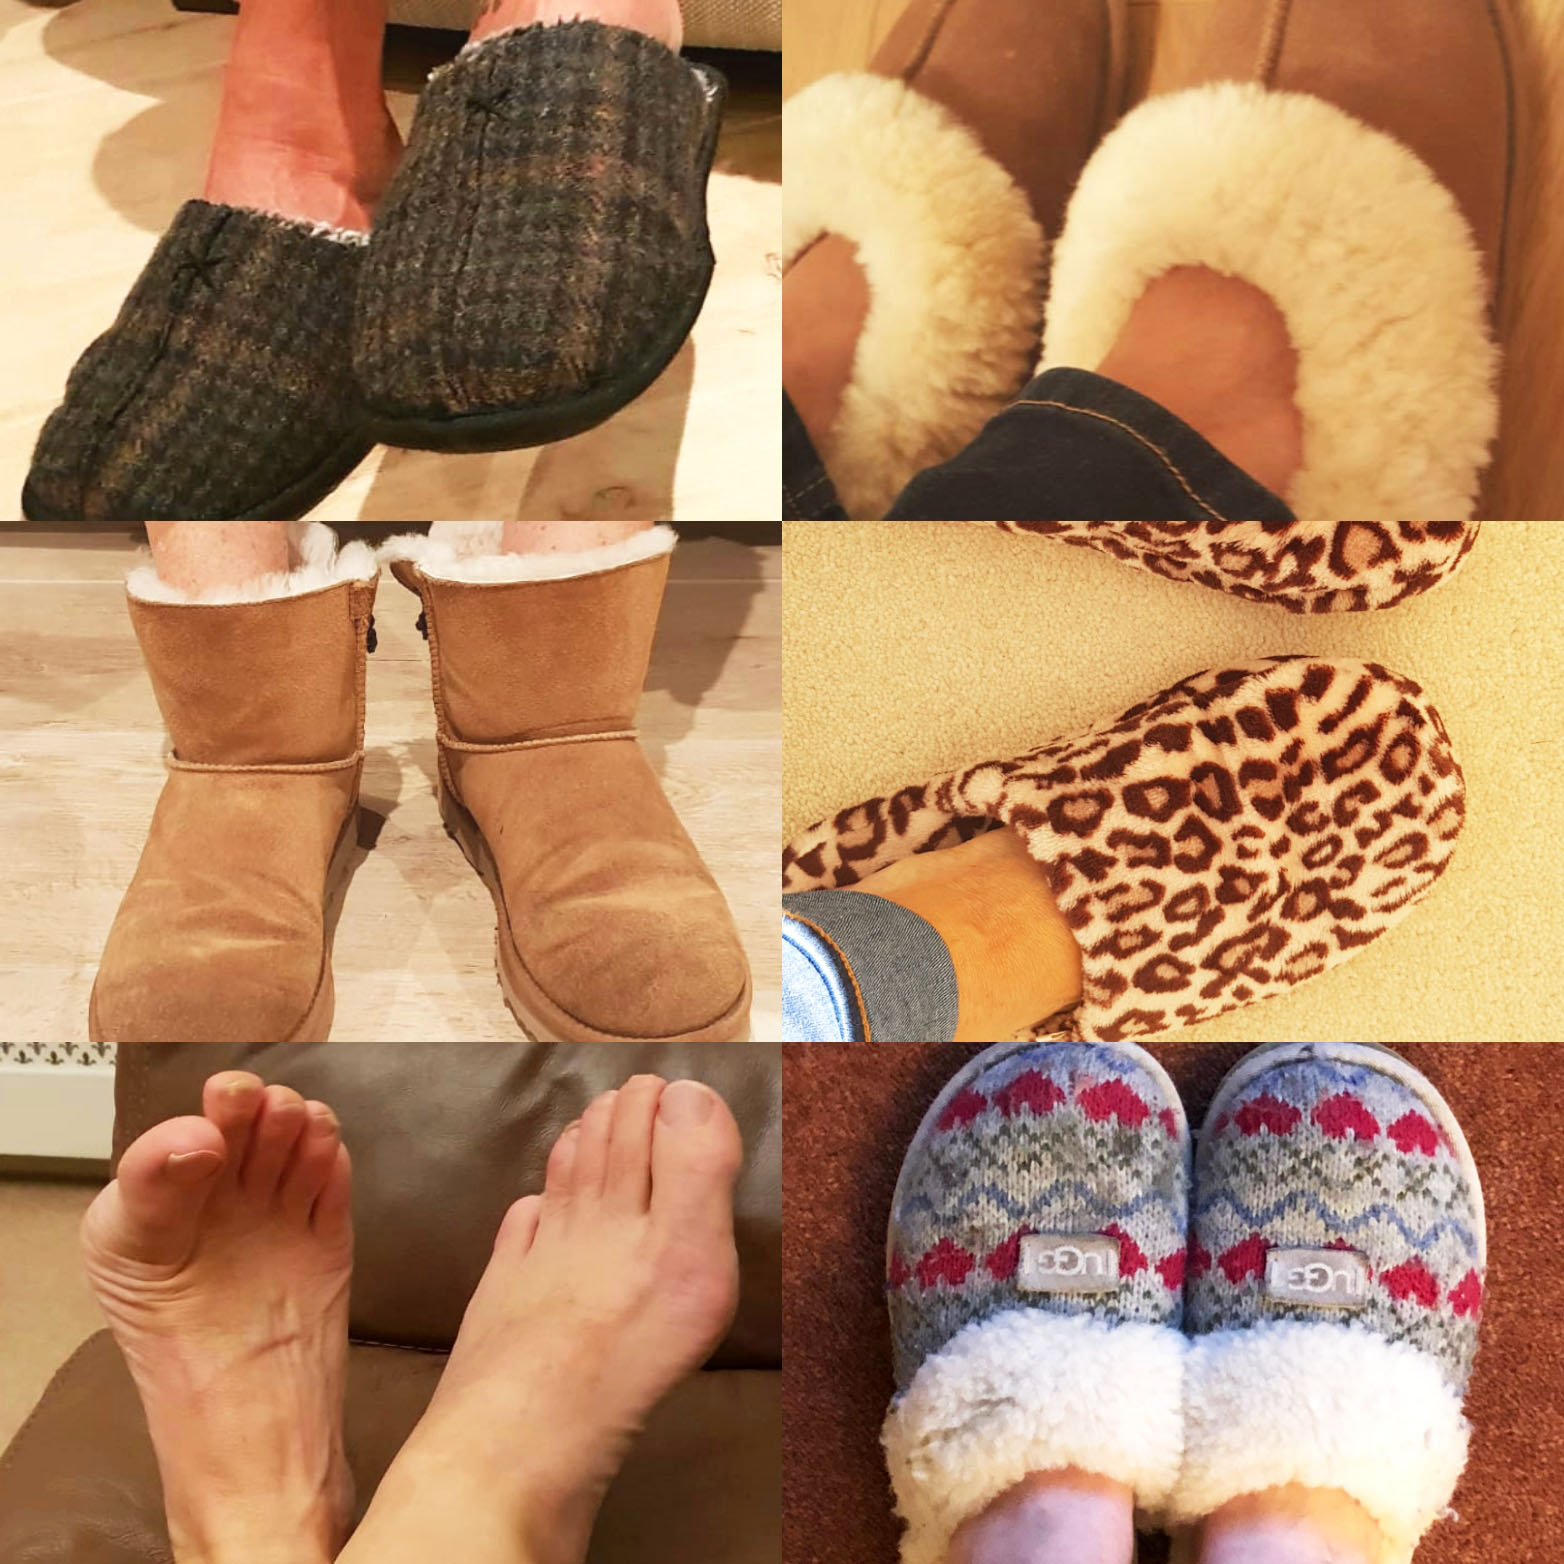 Several different pairs of feet in slippers for indoors